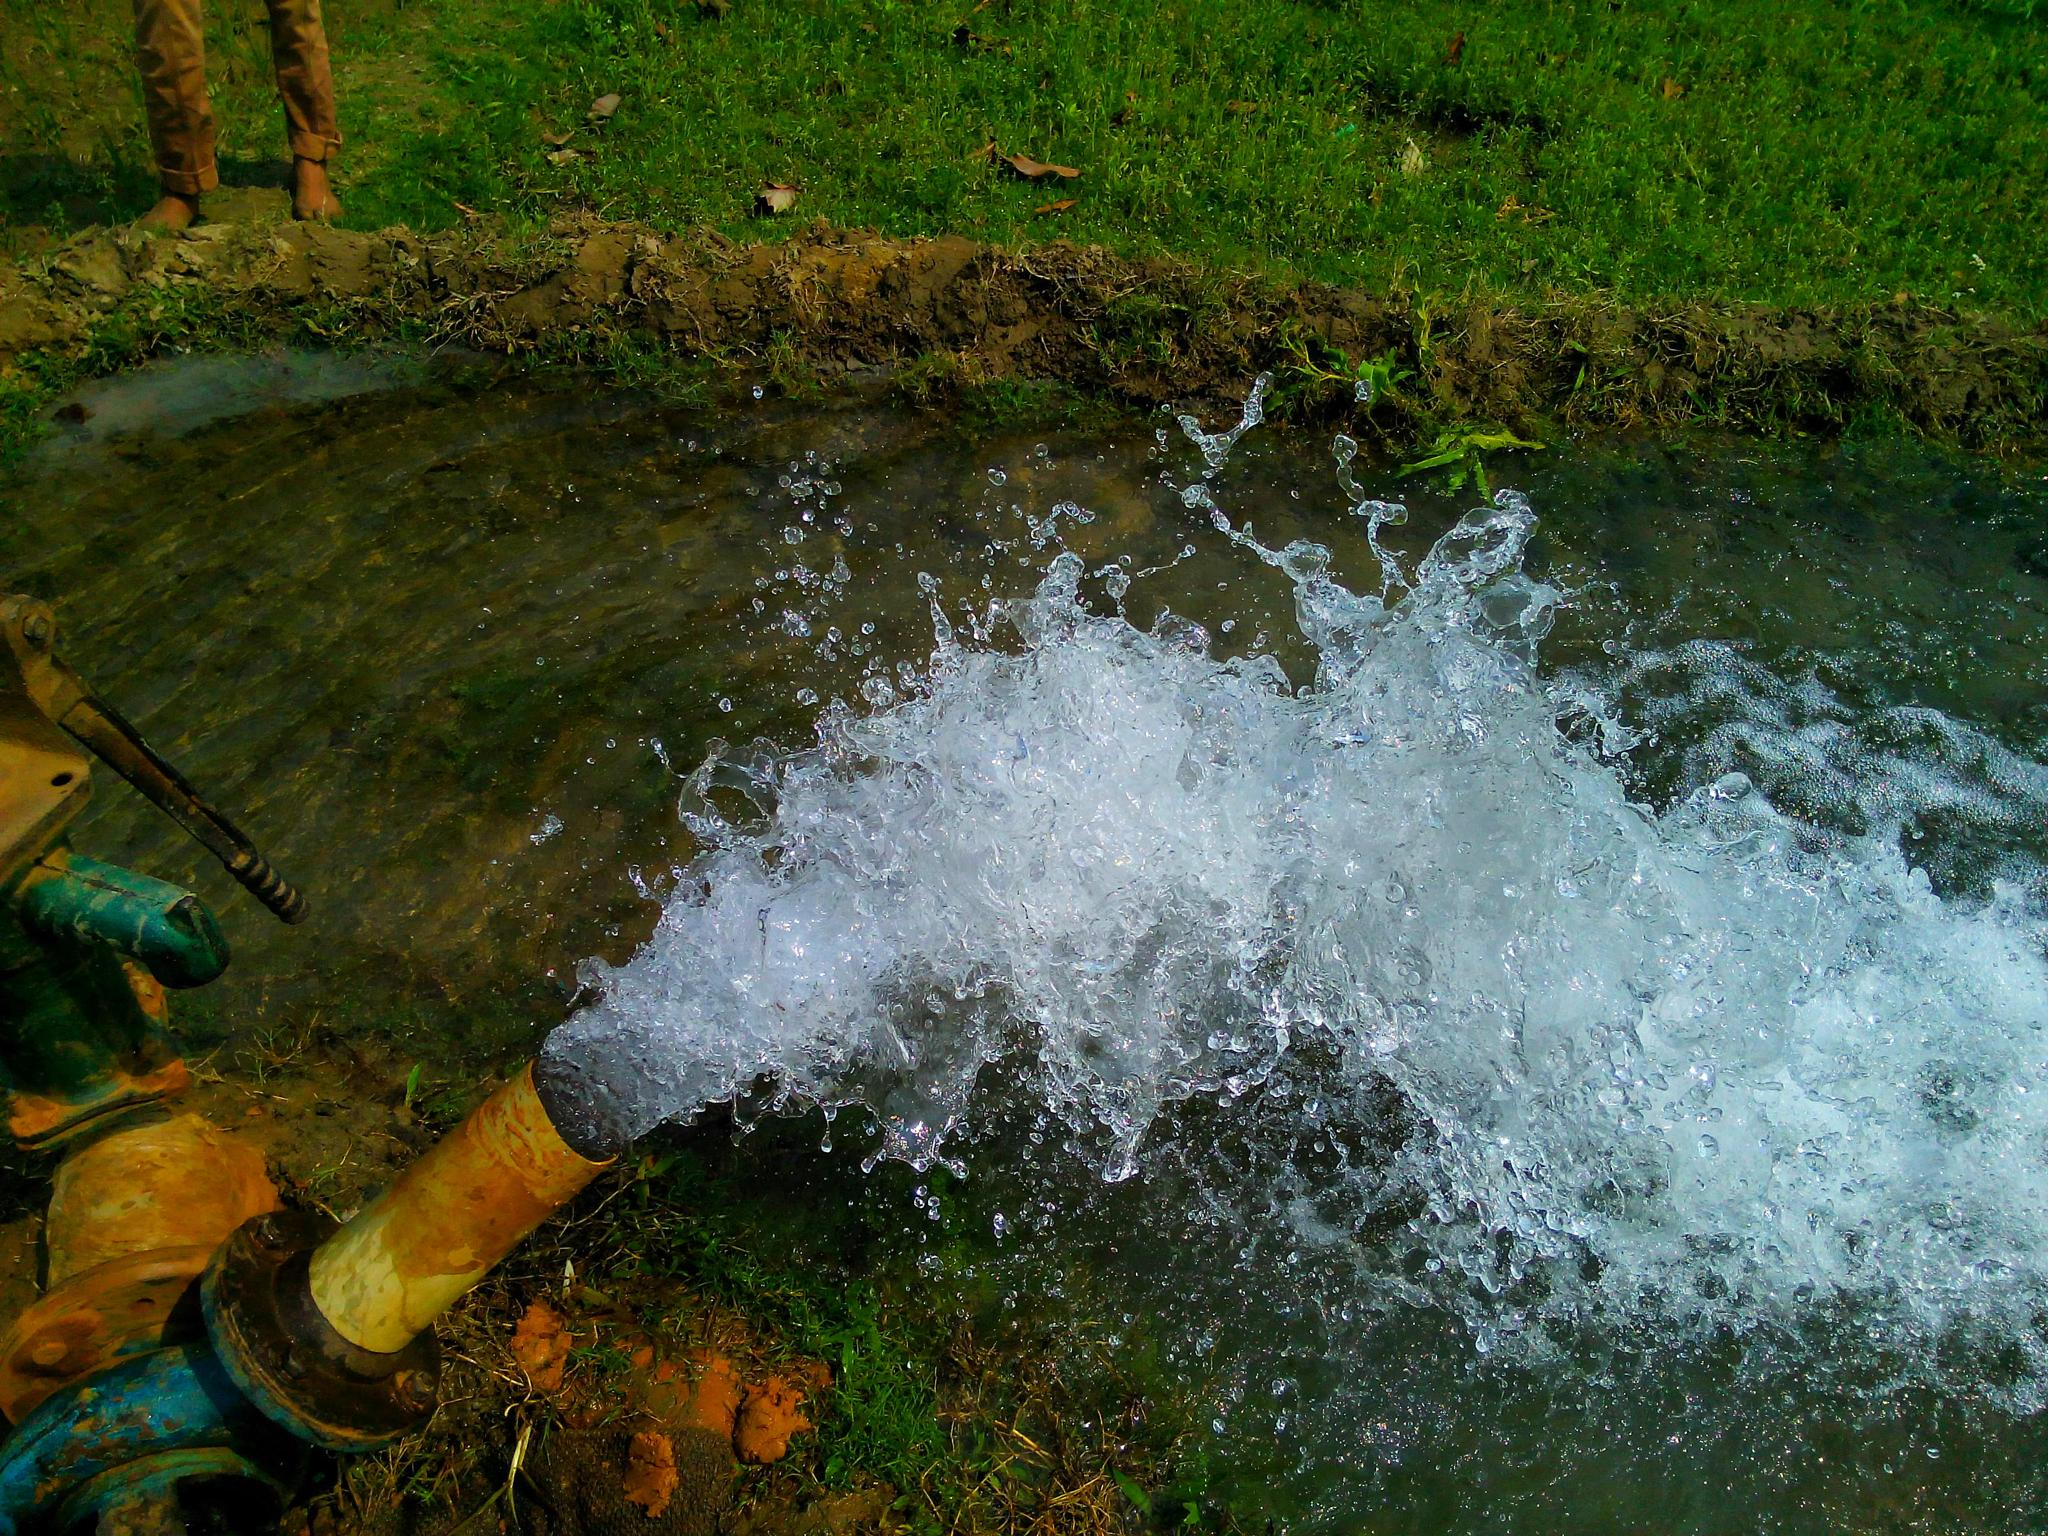 Water Pamp by TN Hoque